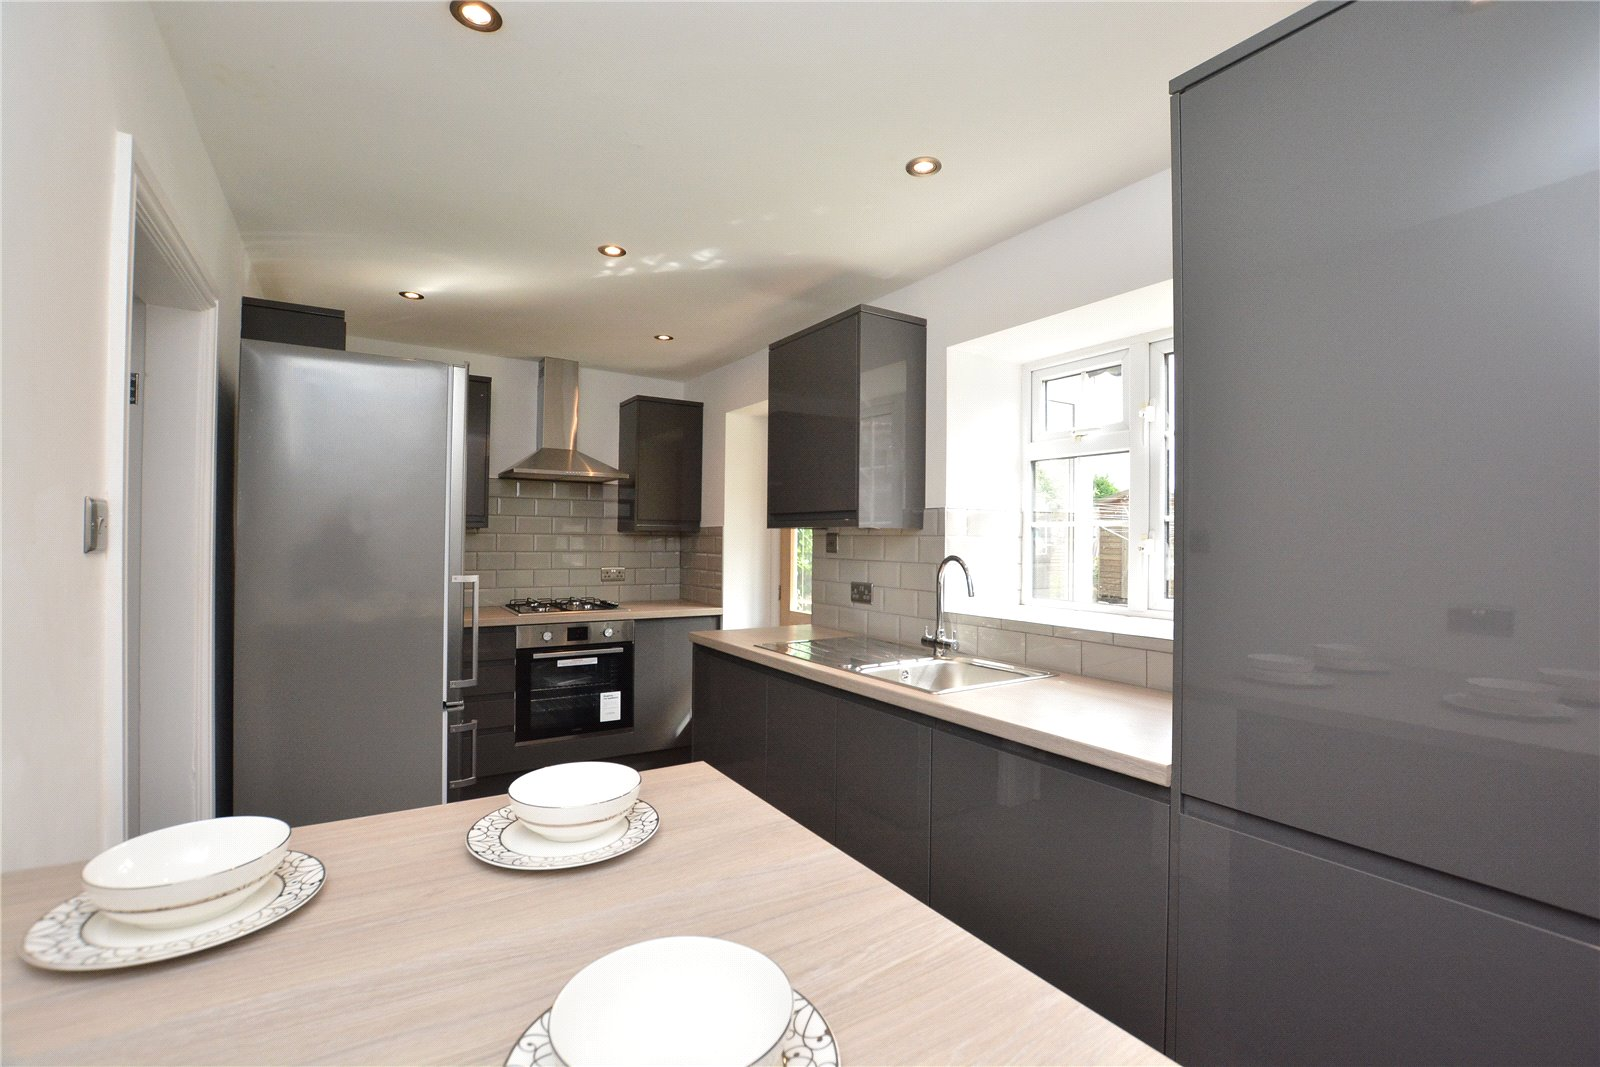 property for sale in Spofforth, kitchen area